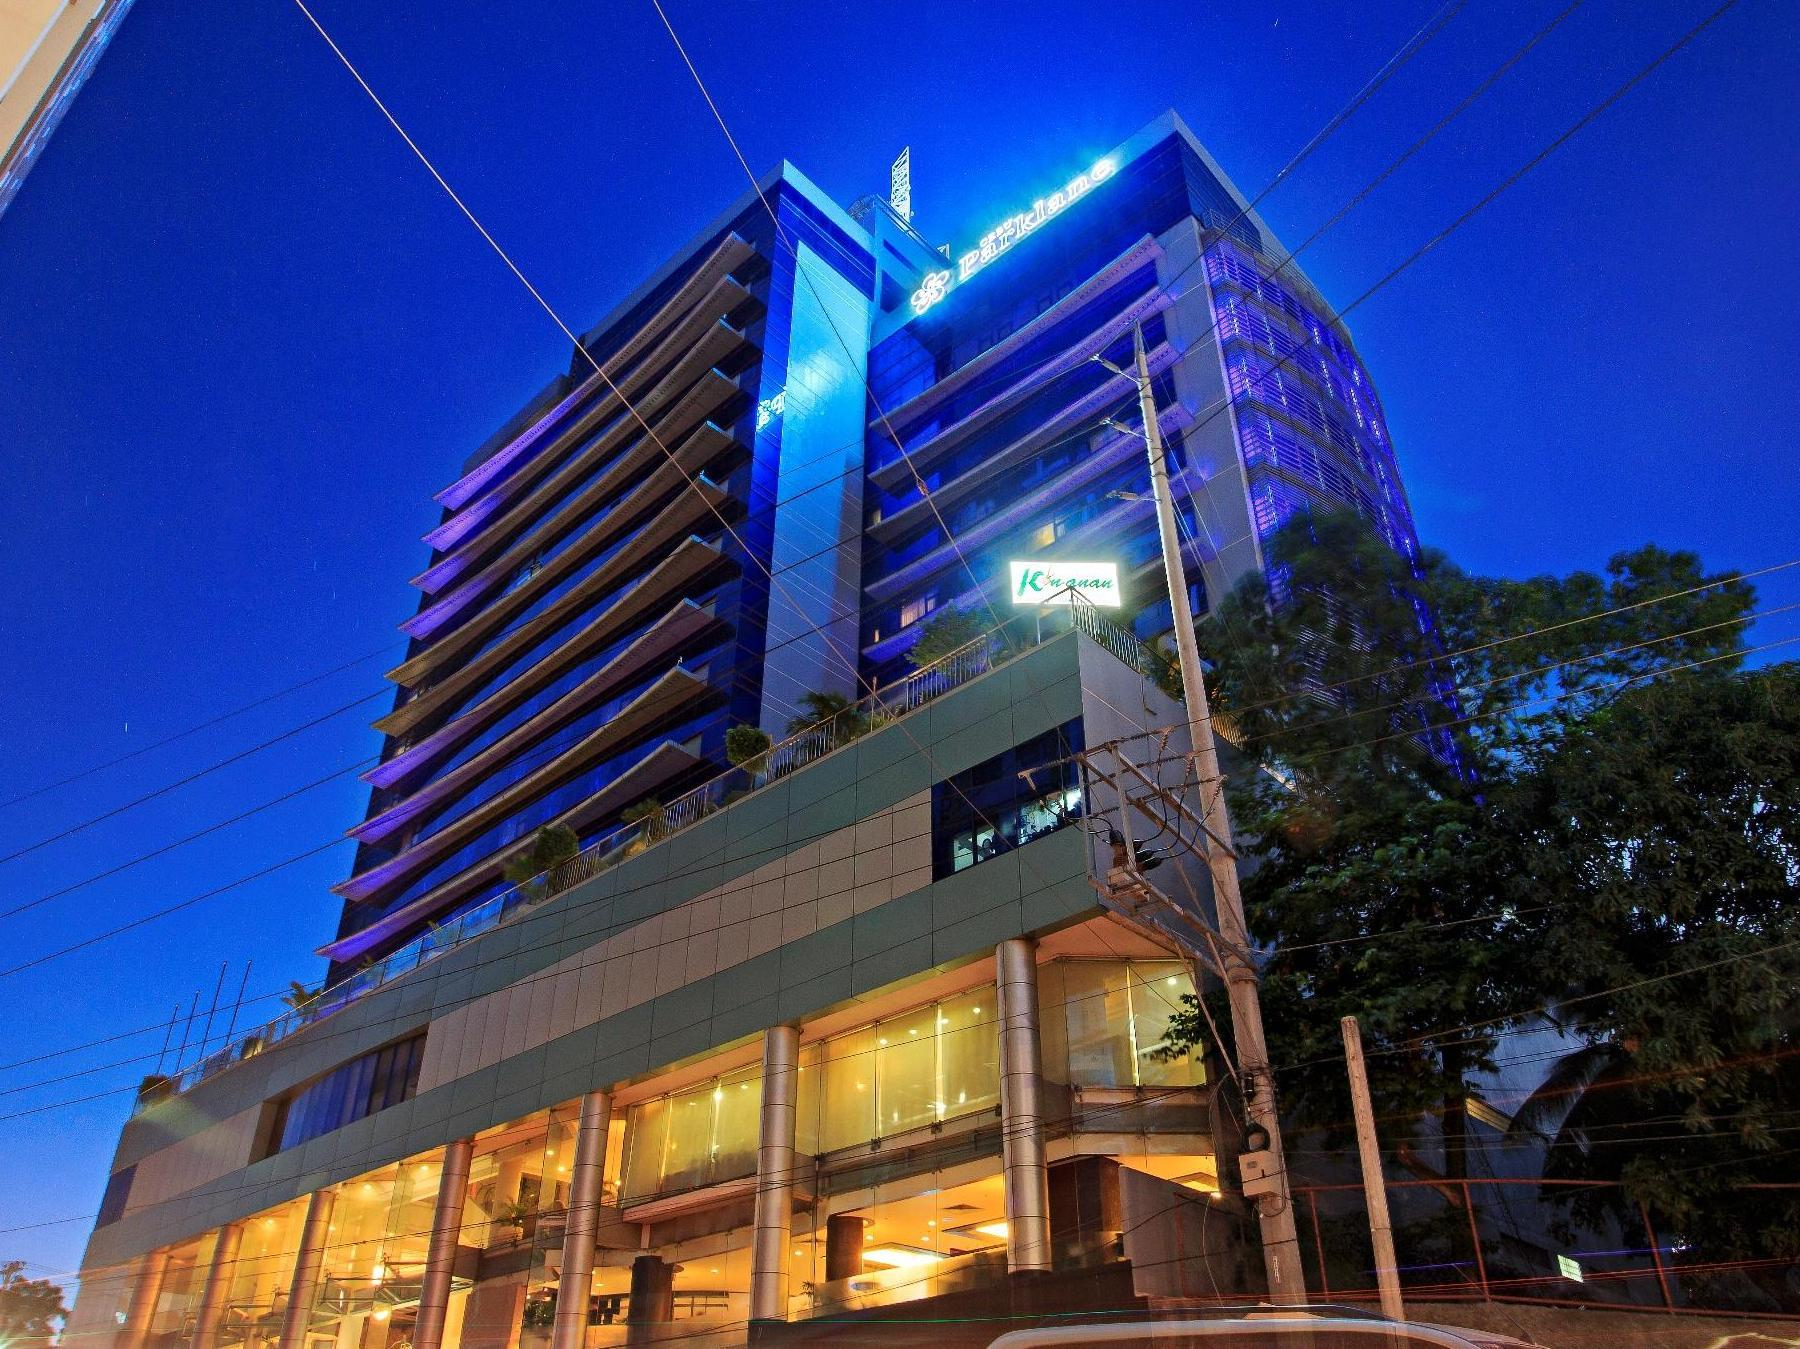 Cebu Parklane International Hotel Cebu - Exterior de l'hotel